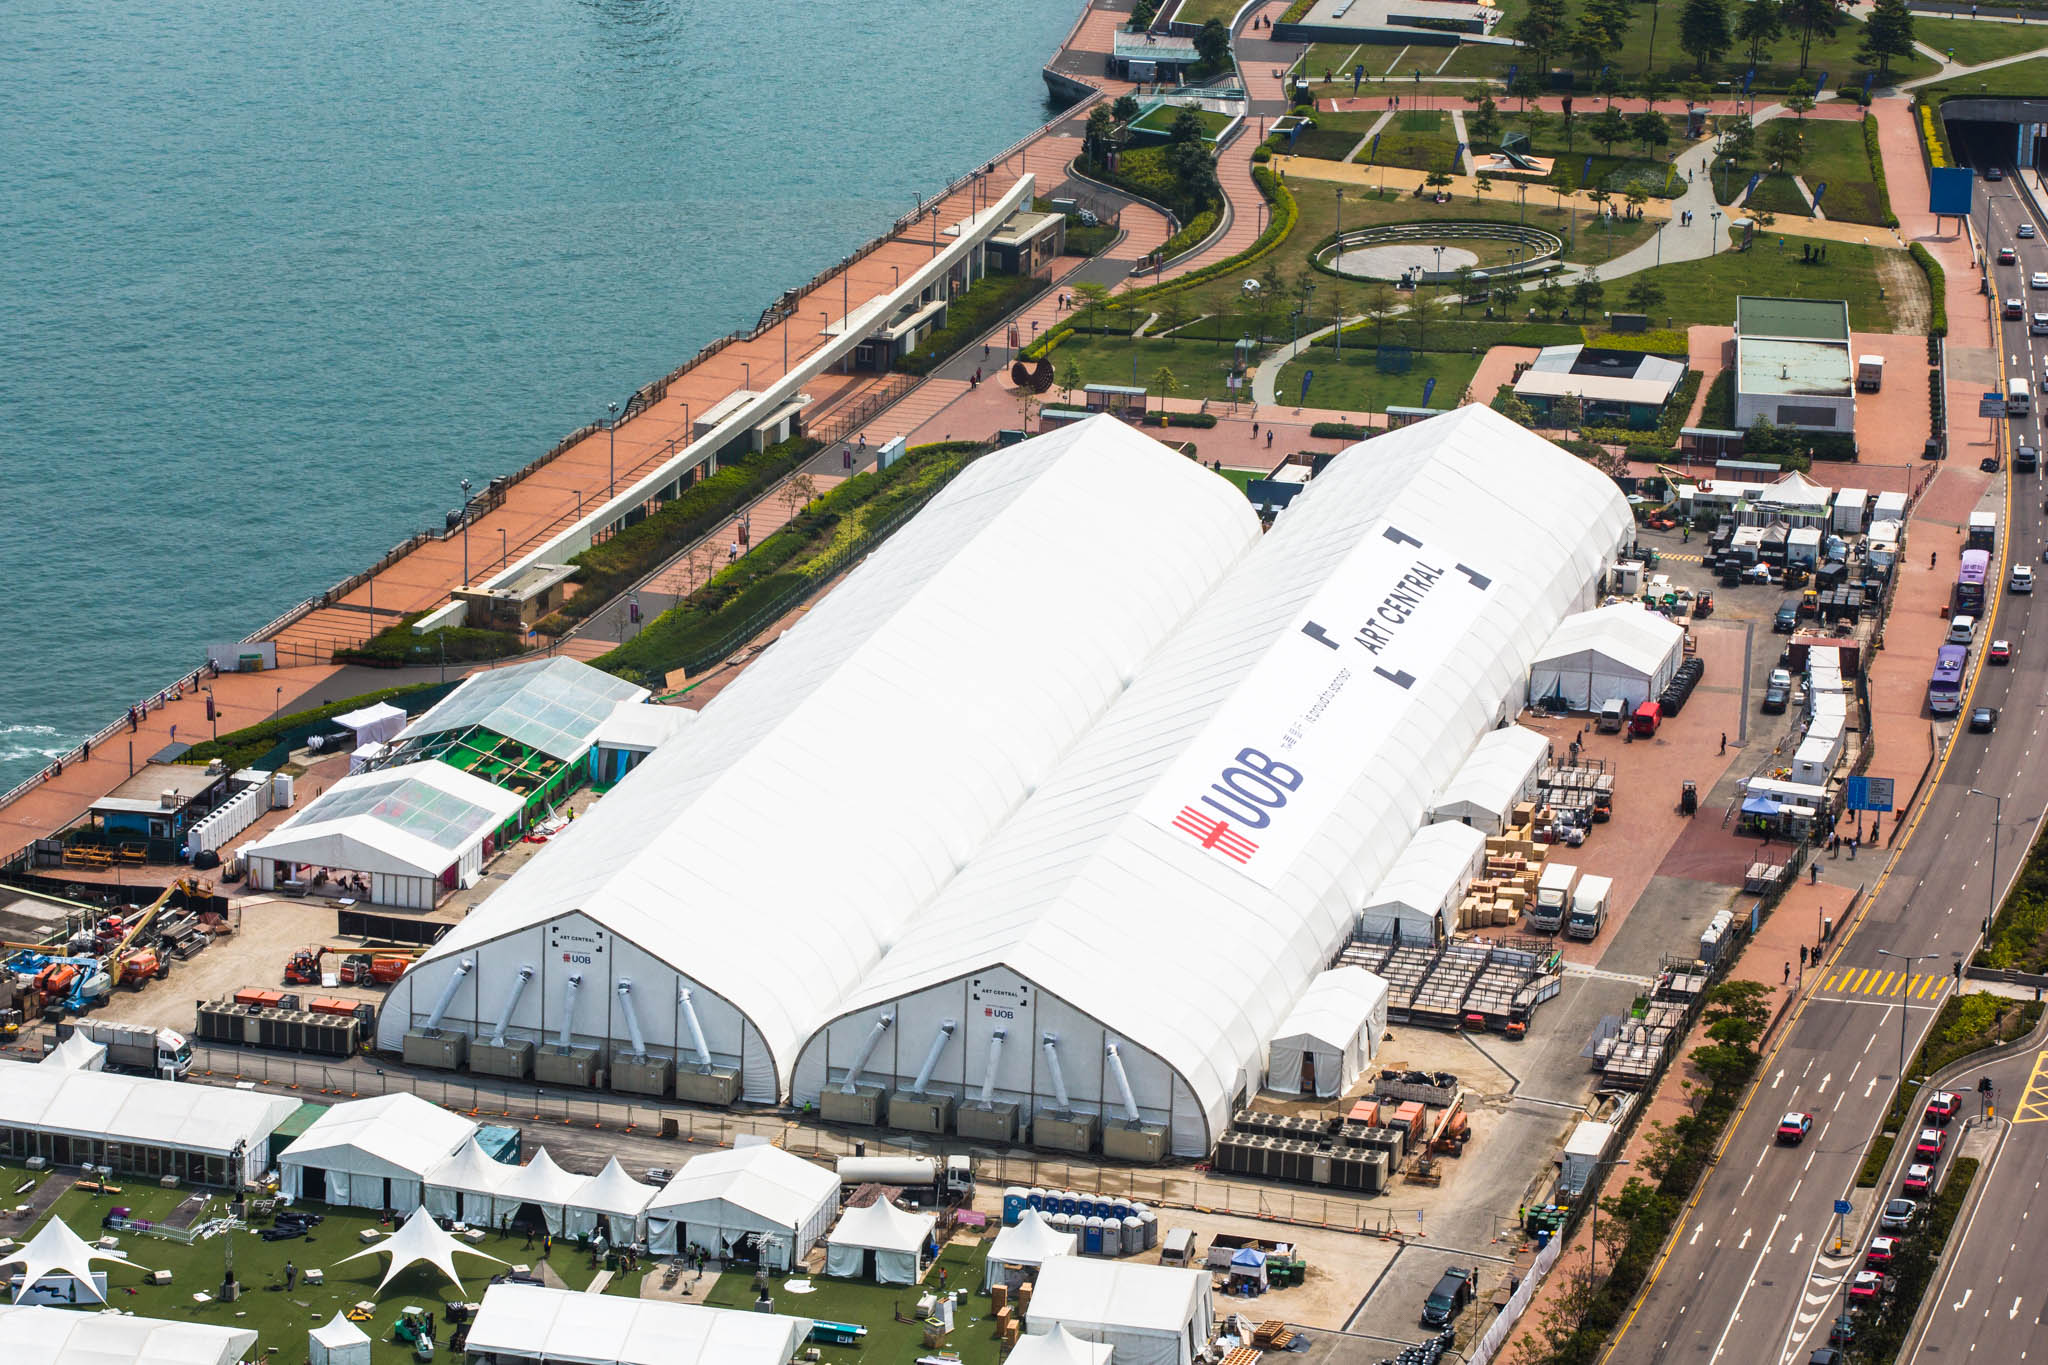 An aerial view of last year's fair. This year, Art Central delivers a diverse line-up of exhibitors and artists, with over 100 participating galleries from 22 countries